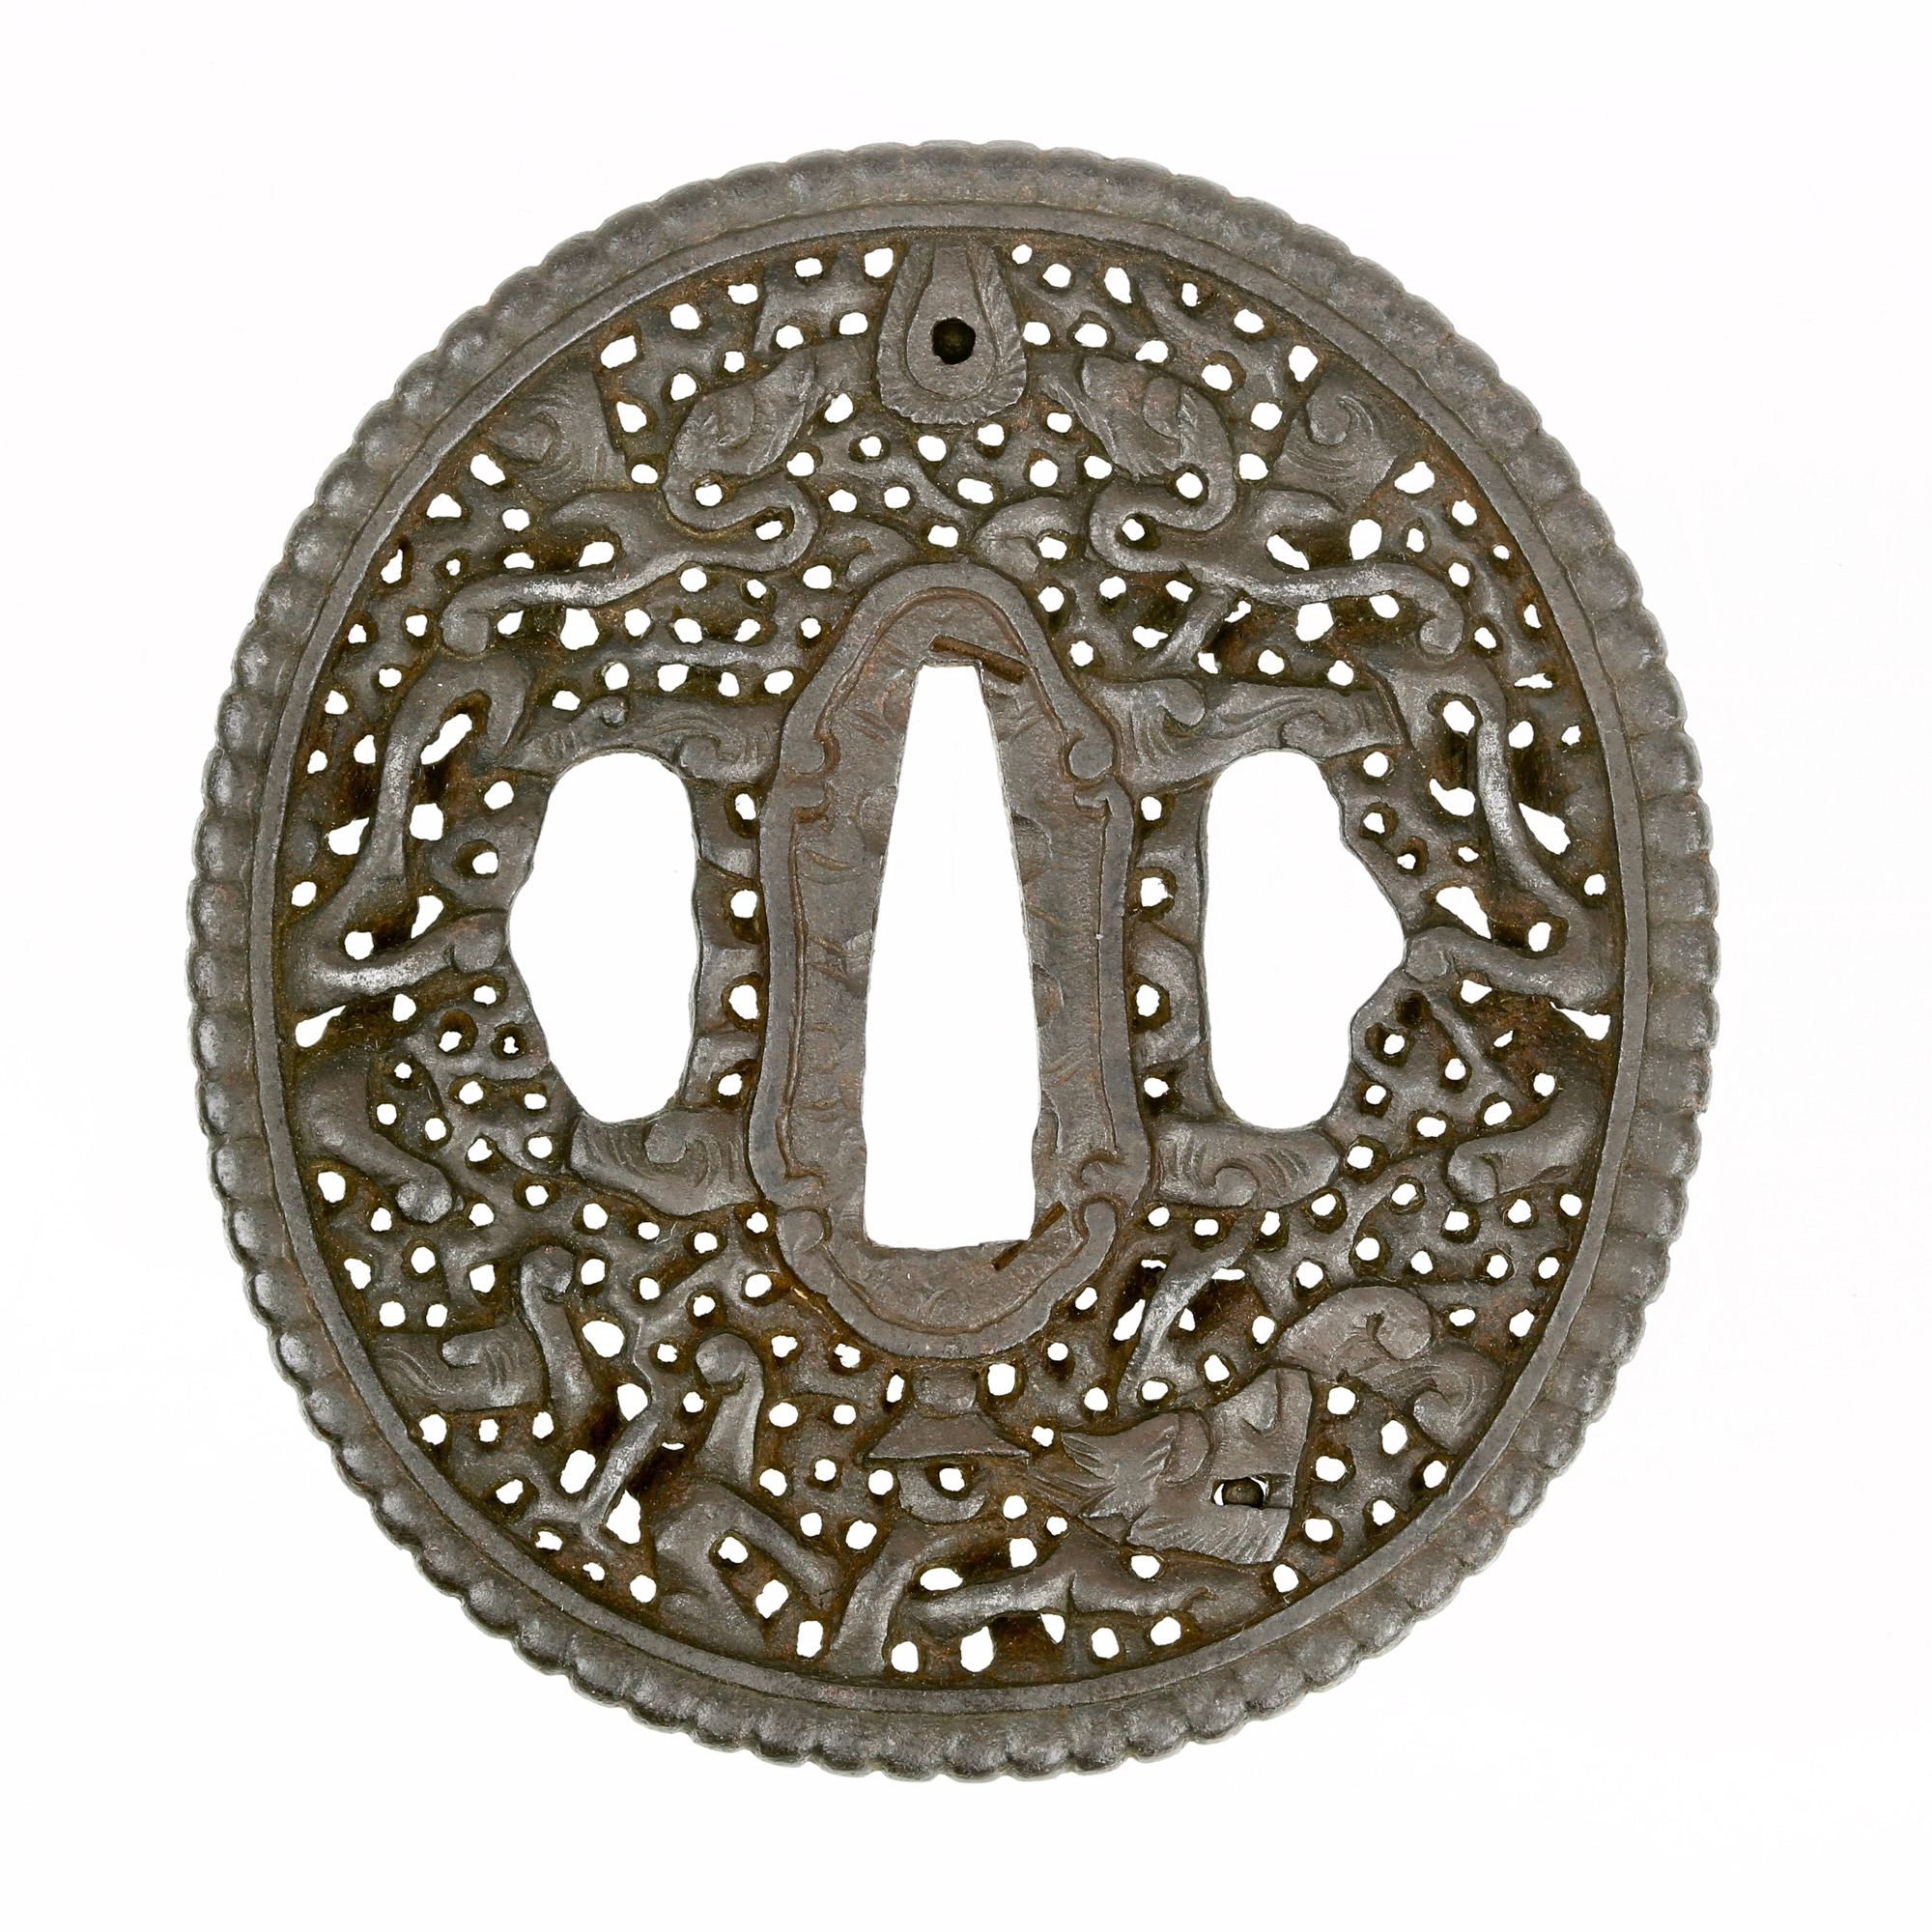 An Asian export sword guard